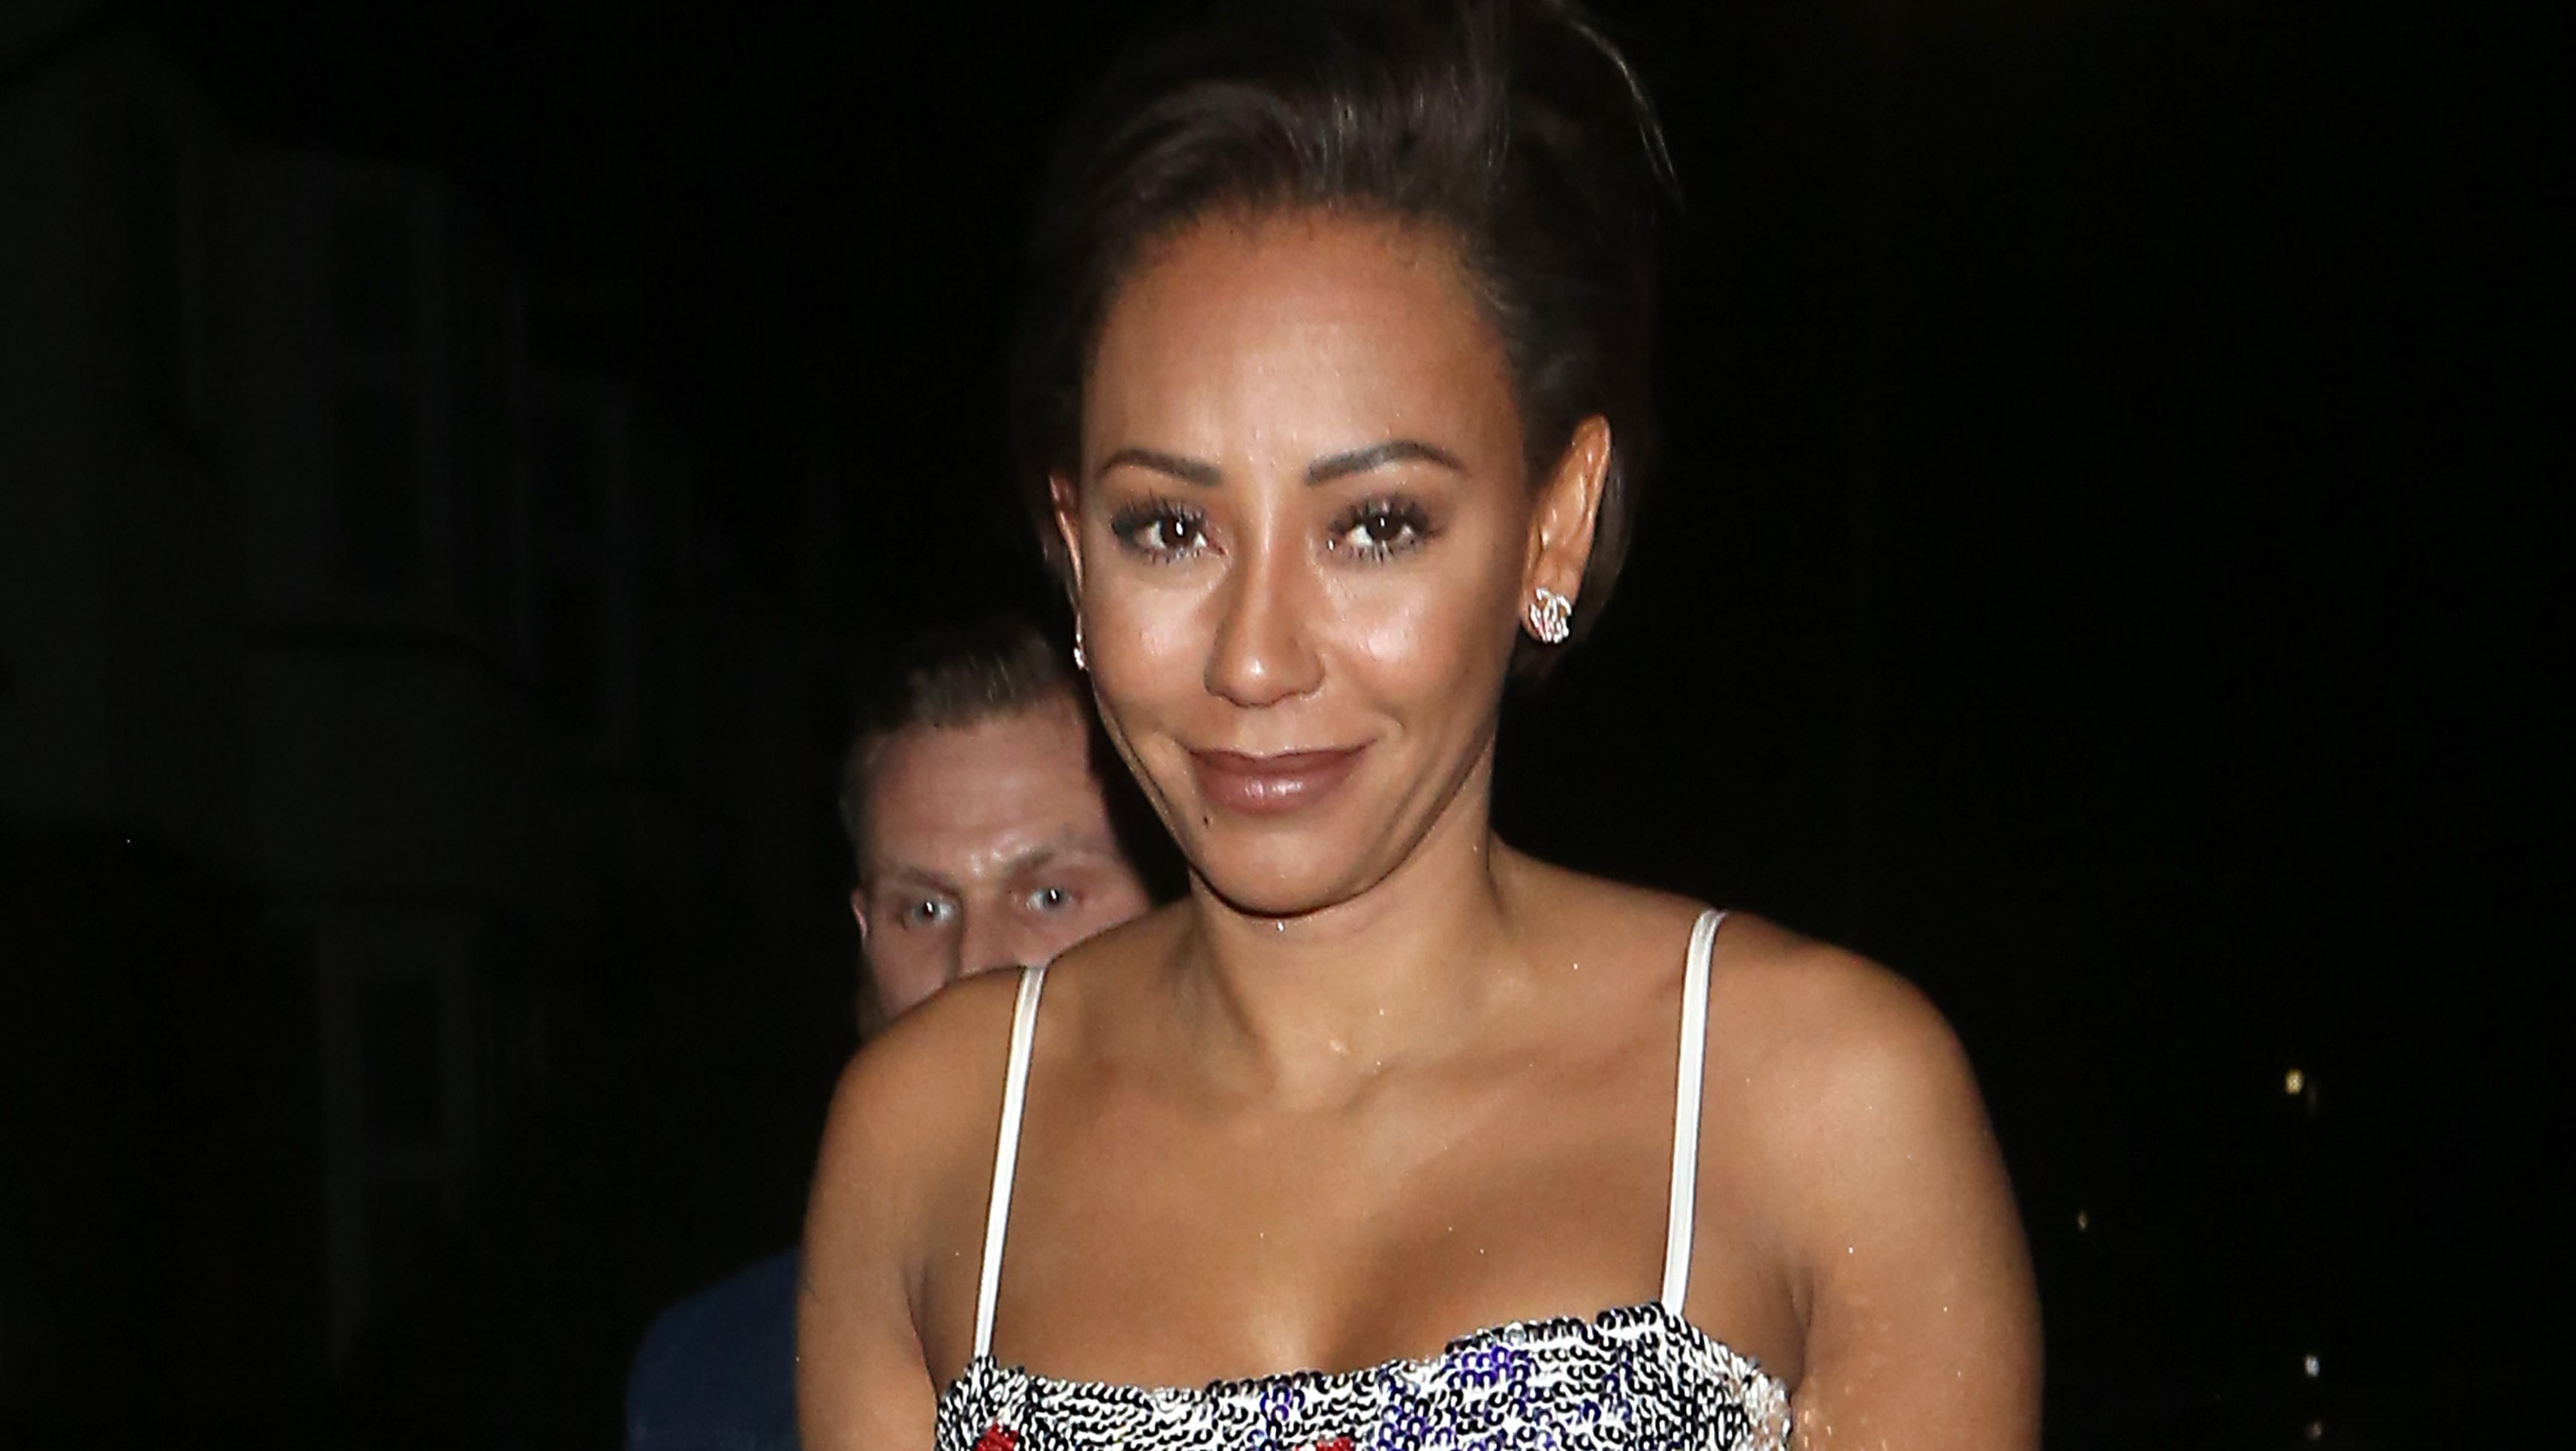 Singer Mel B rushed to hospital after losing vision in right eye